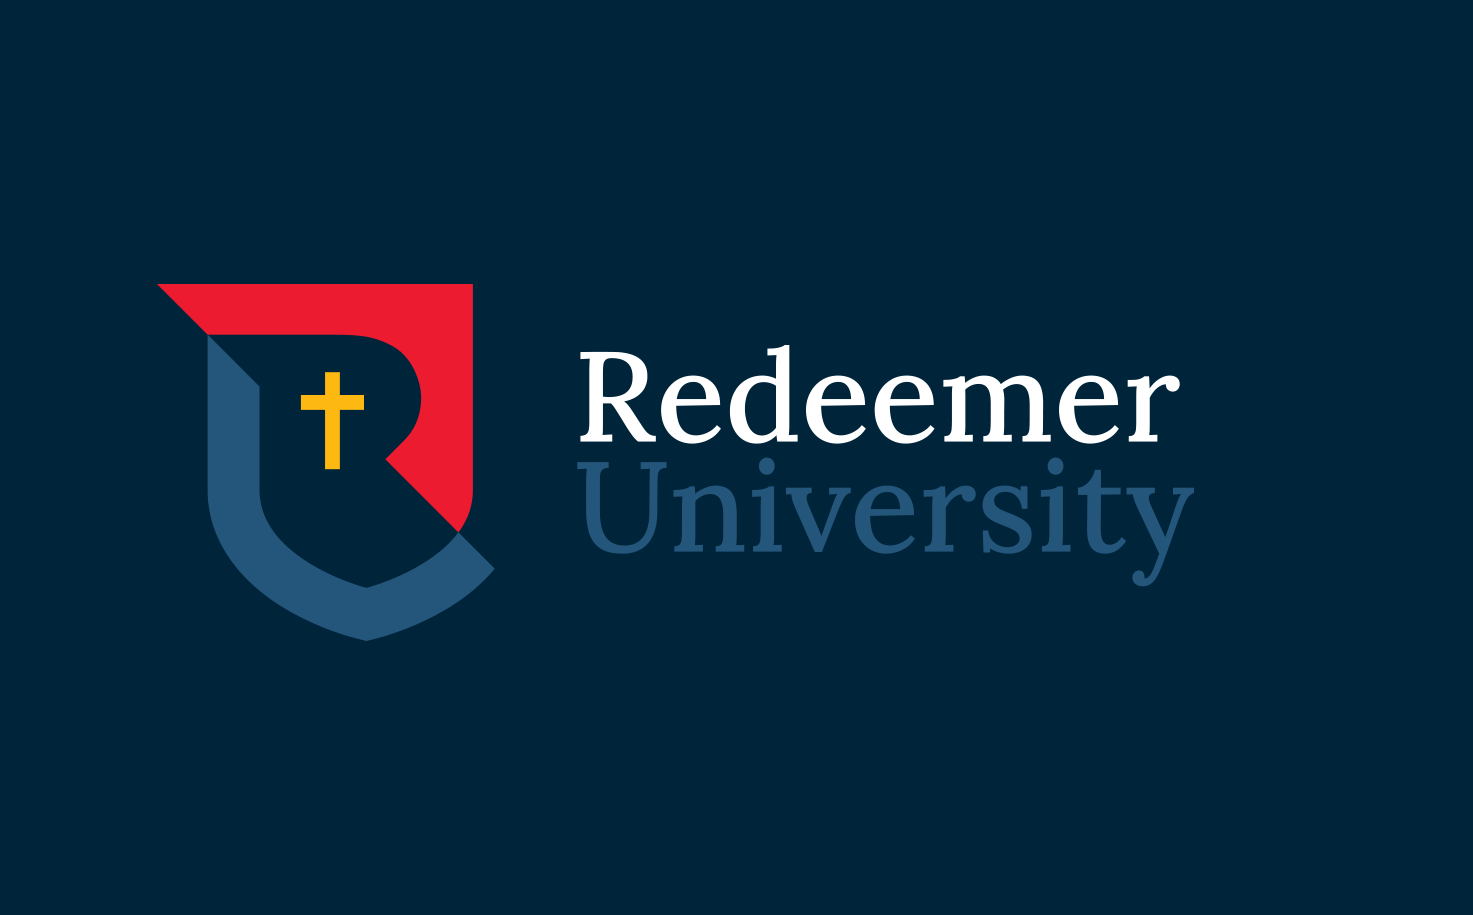 Redeemer University partners with Hamilton 2026 over proposed multi-sport venue